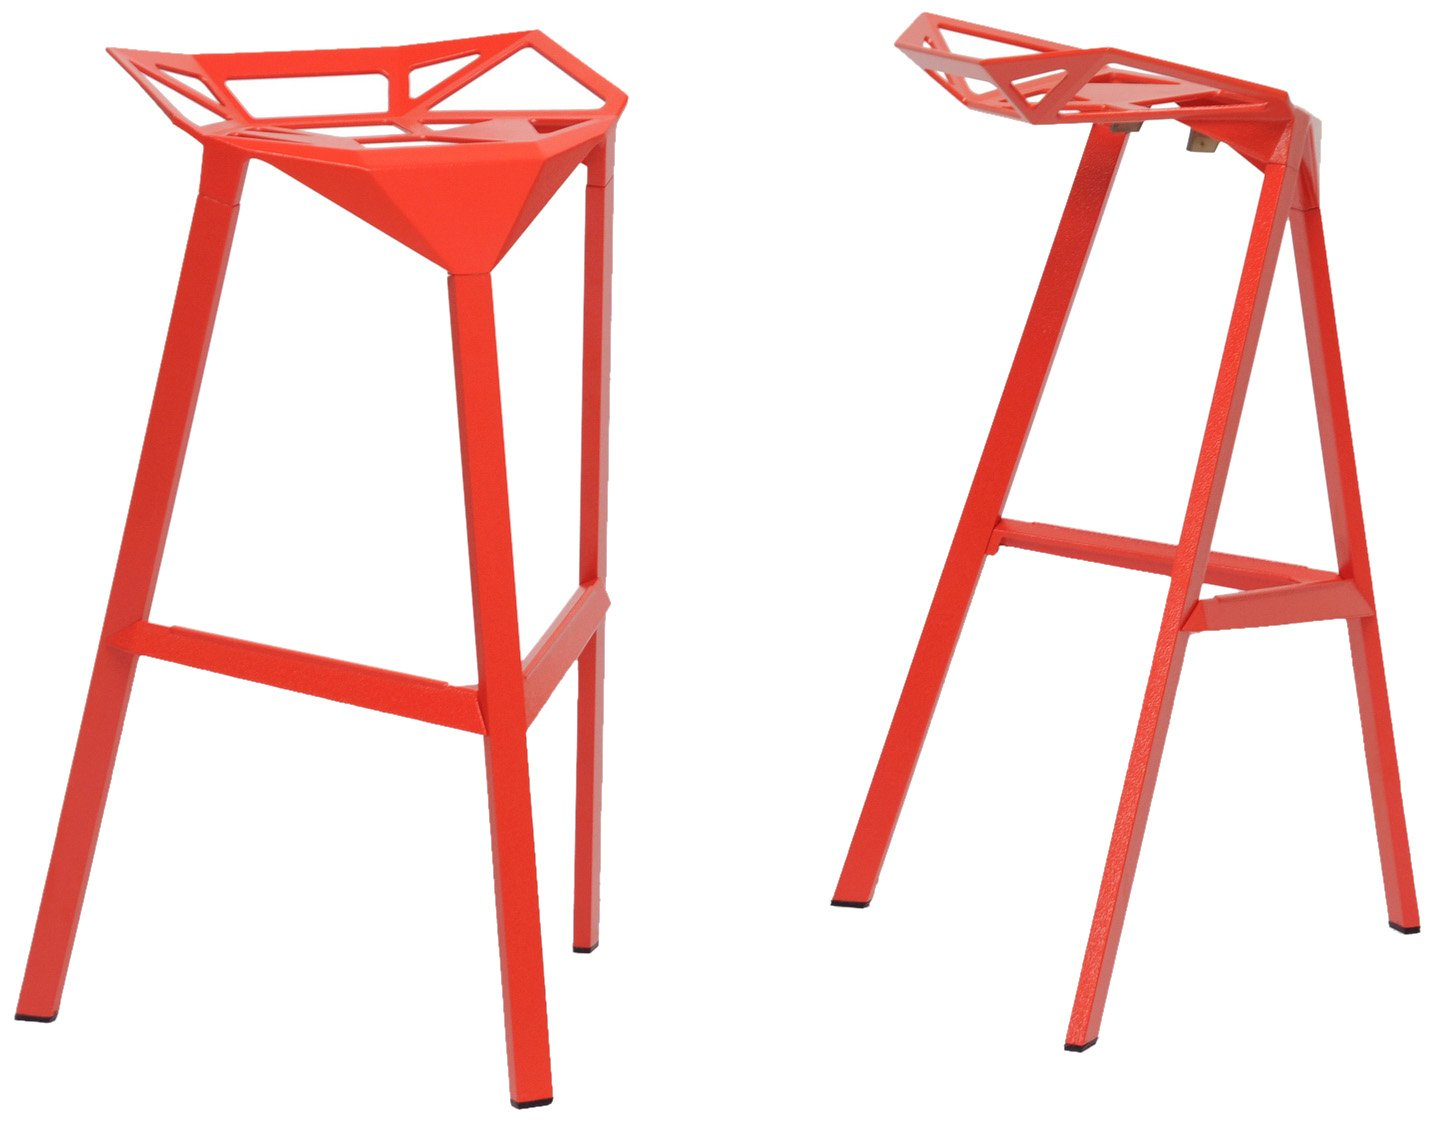 Amazon.com Baxton Studio Kaysa Aluminum Modern Bar Stool Red Set of 2 Kitchen u0026 Dining  sc 1 st  Amazon.com & Amazon.com: Baxton Studio Kaysa Aluminum Modern Bar Stool Red ... islam-shia.org